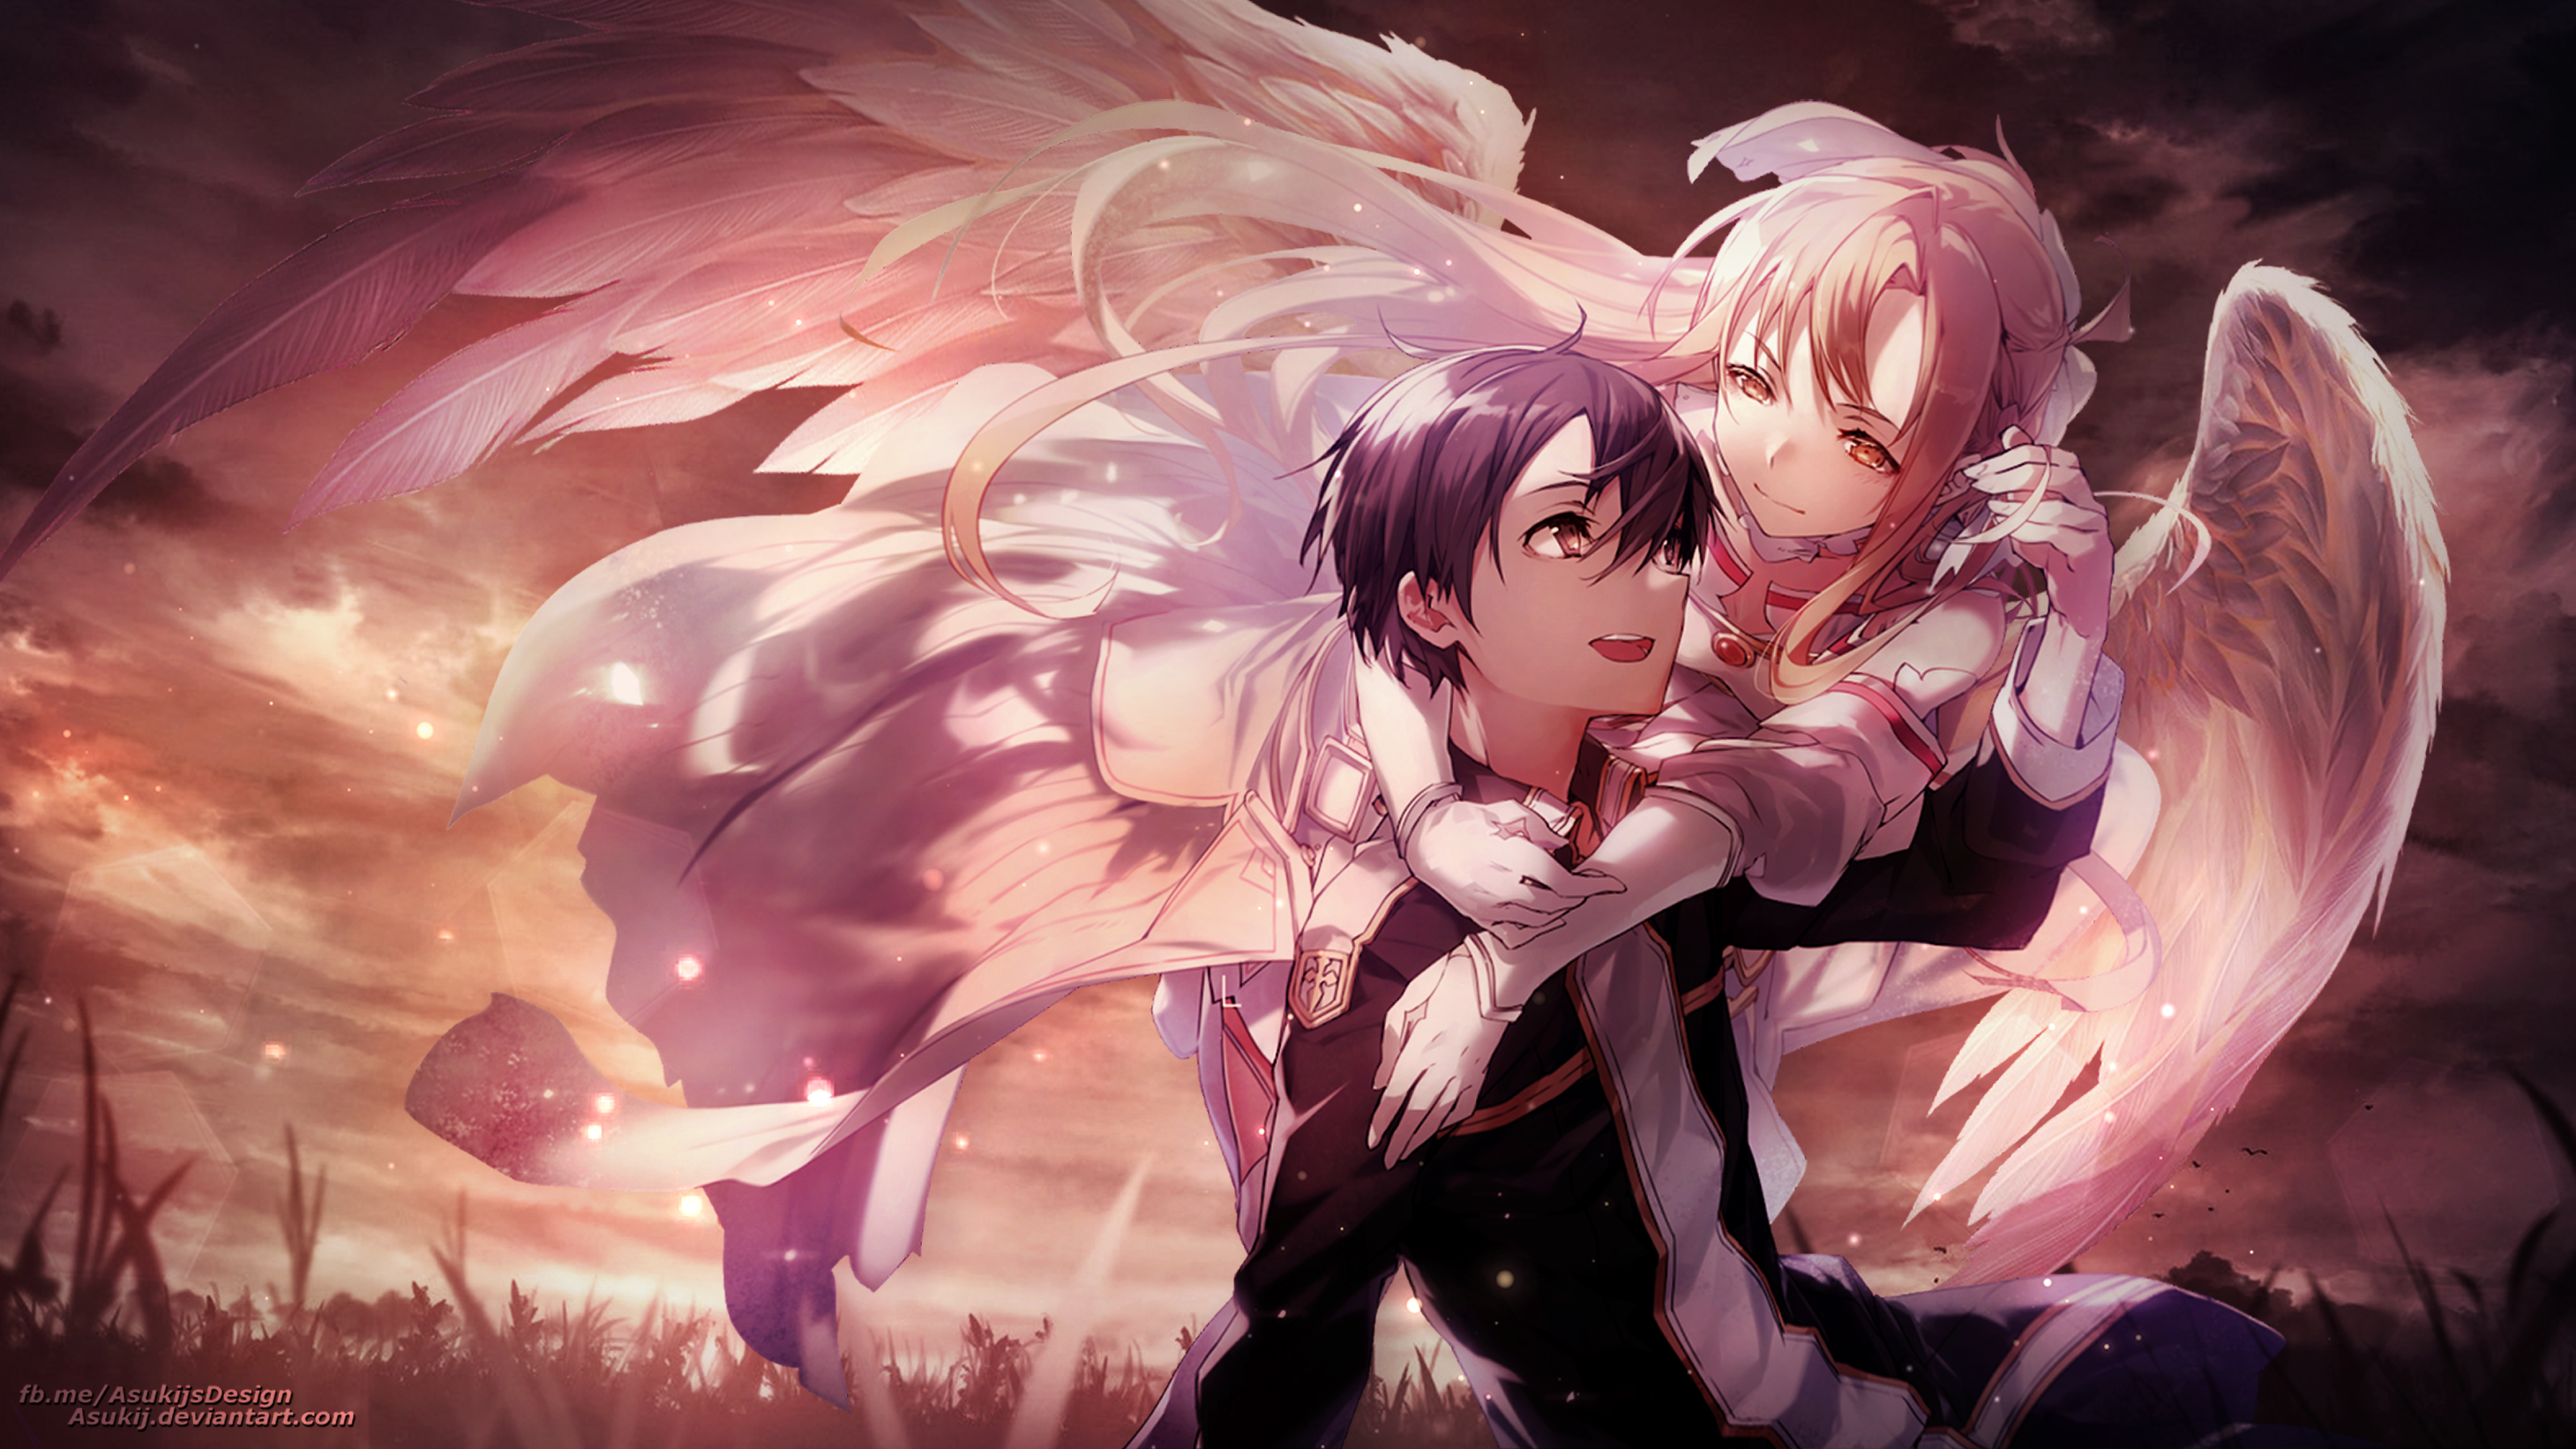 Wallpaper Kirito Und Stacia Asuna By Asukij On Deviantart